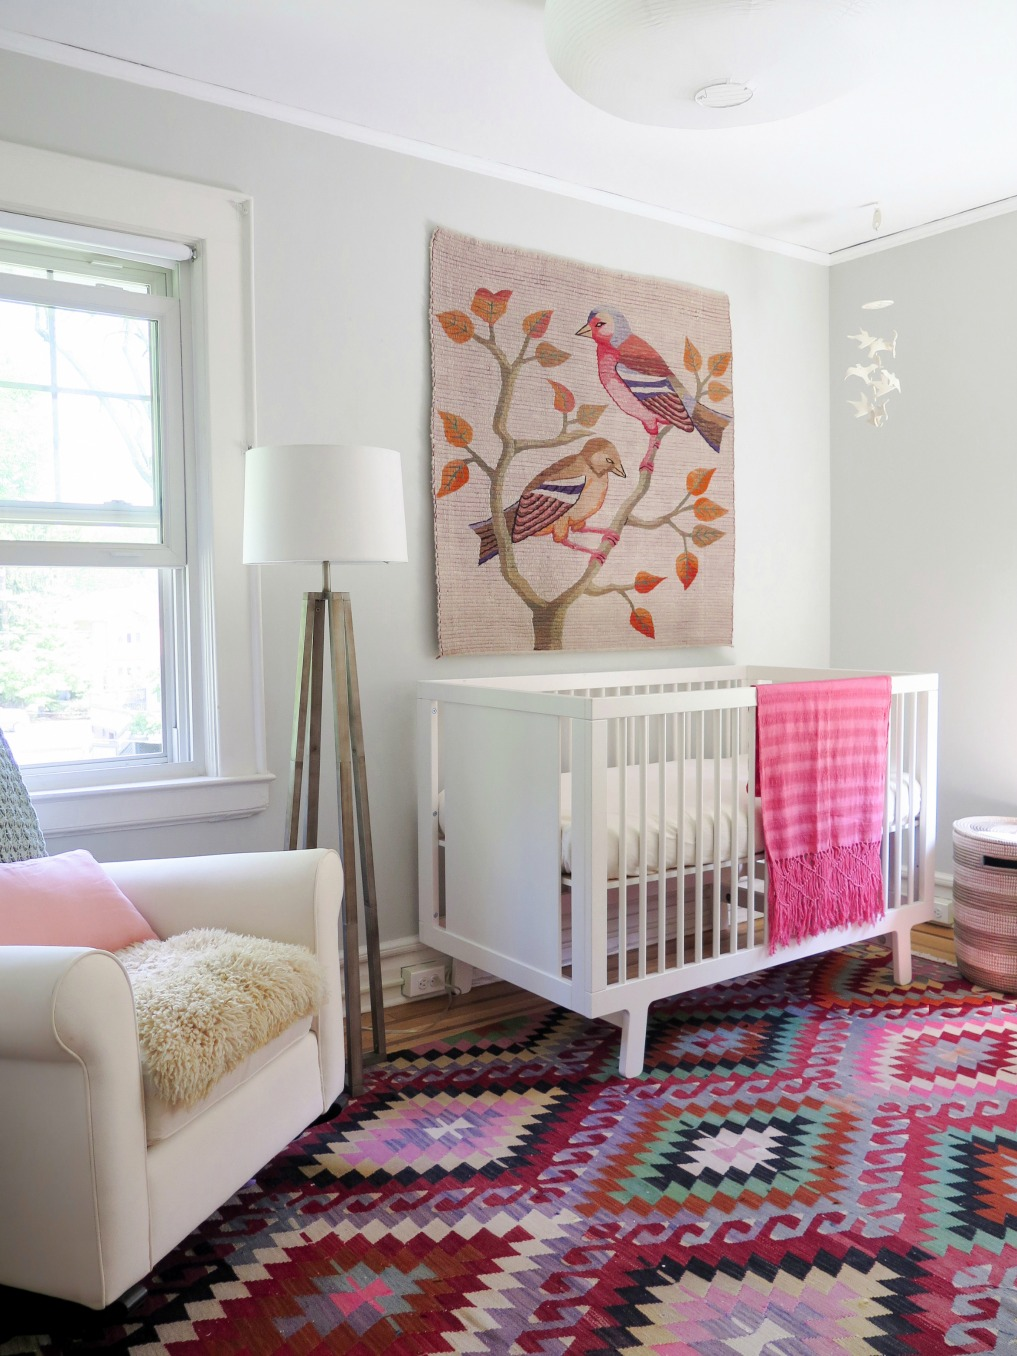 Pink nursery - love the vibrant rug and bird tapestry